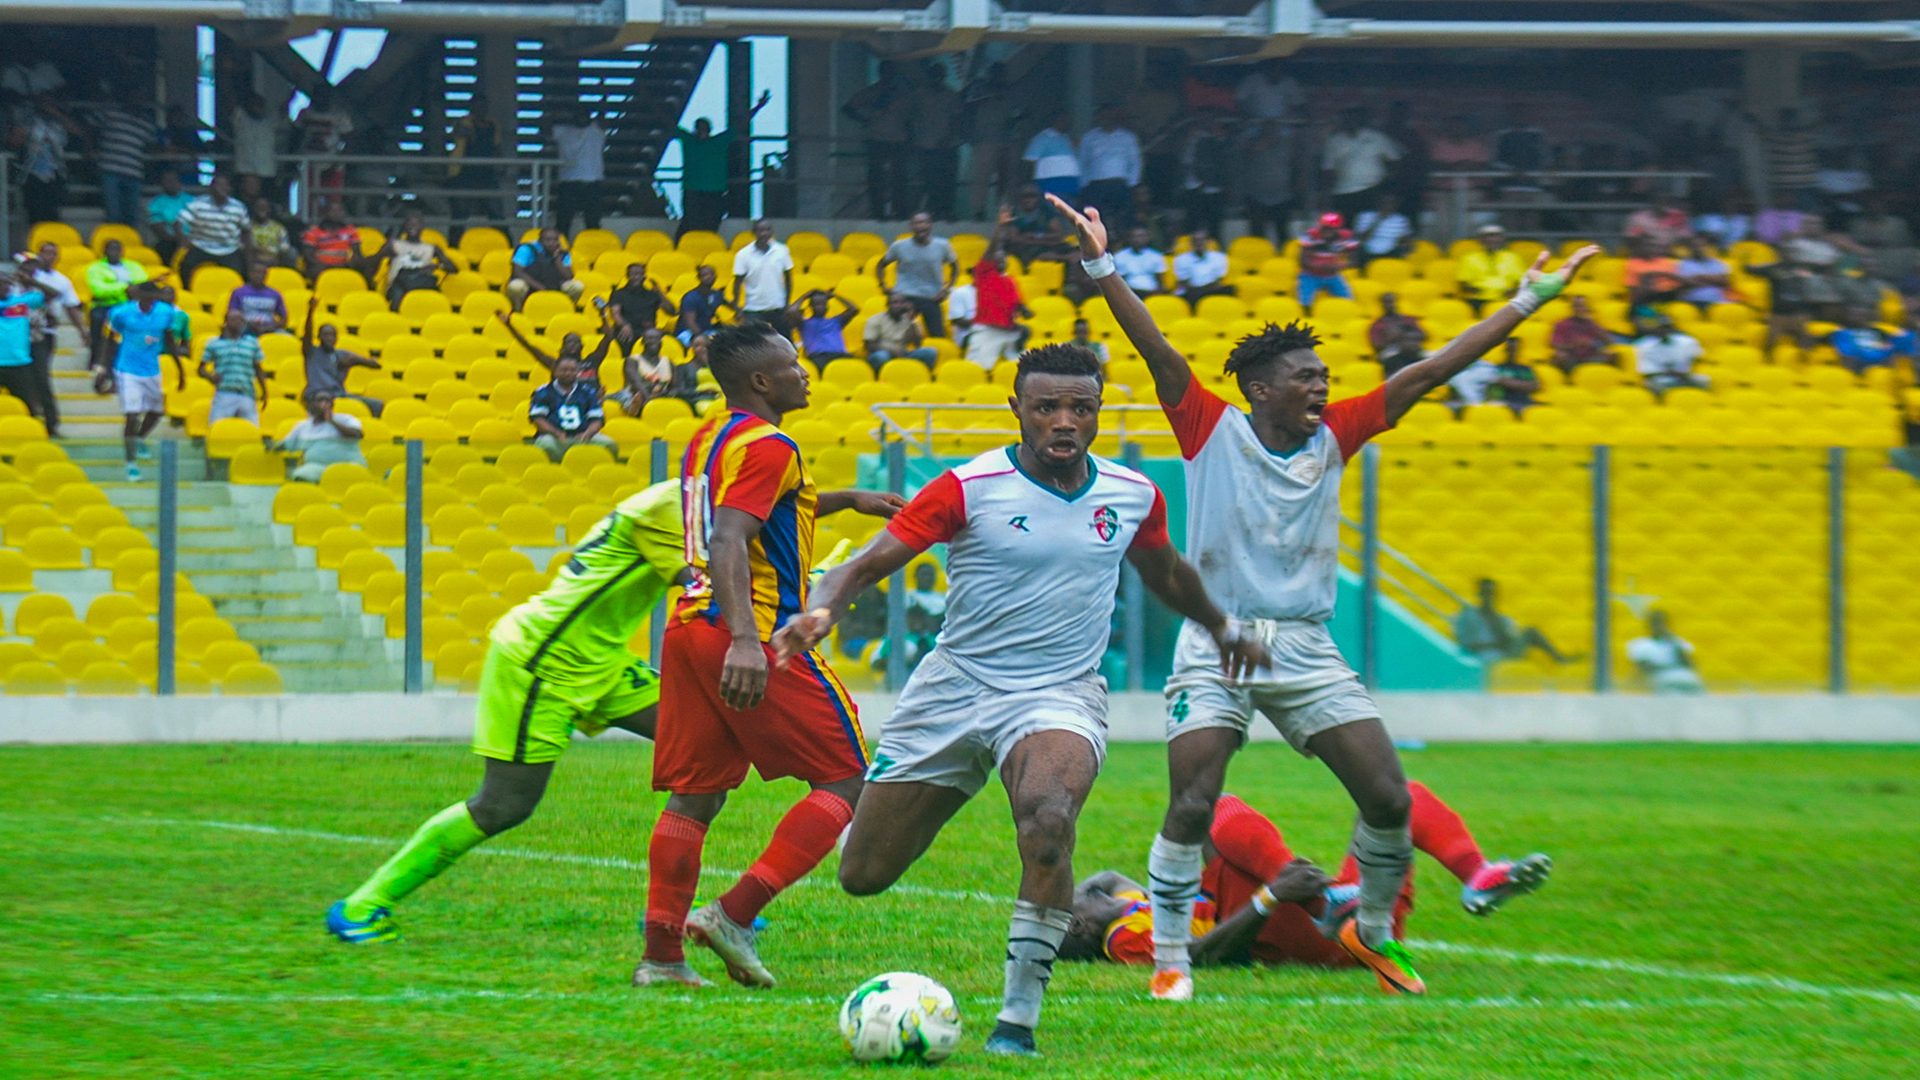 GPL: Hearts of Oak boss Odoom reacts to giving away two leads in Ashanti Gold draw